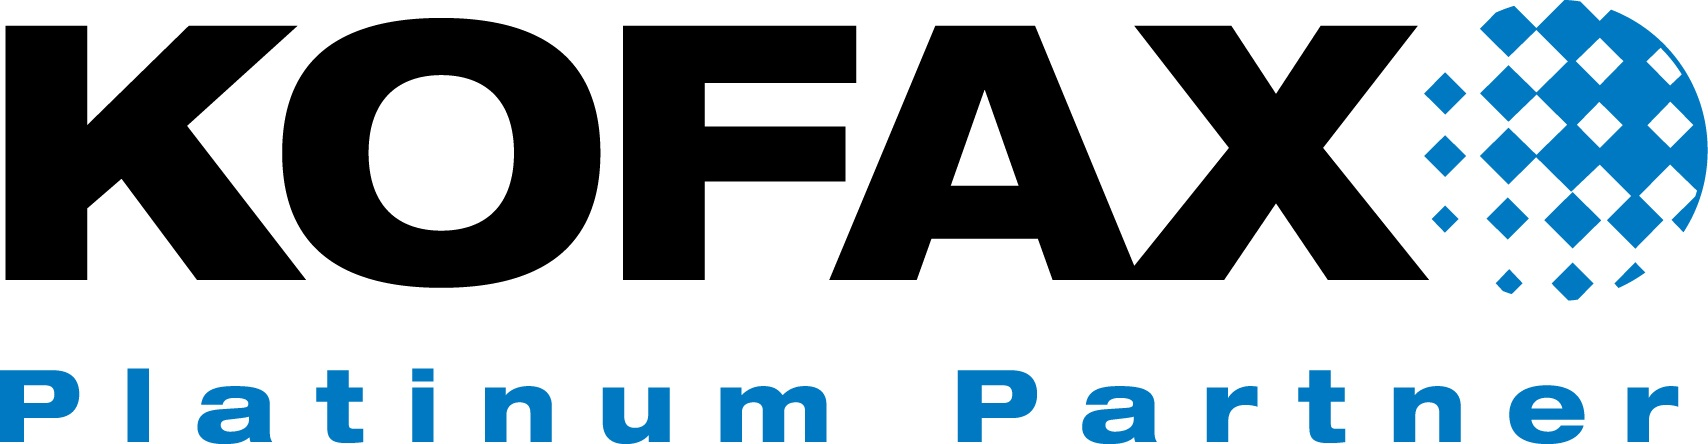 Kofax Partner Logo Platinum - Color (.jpg format)